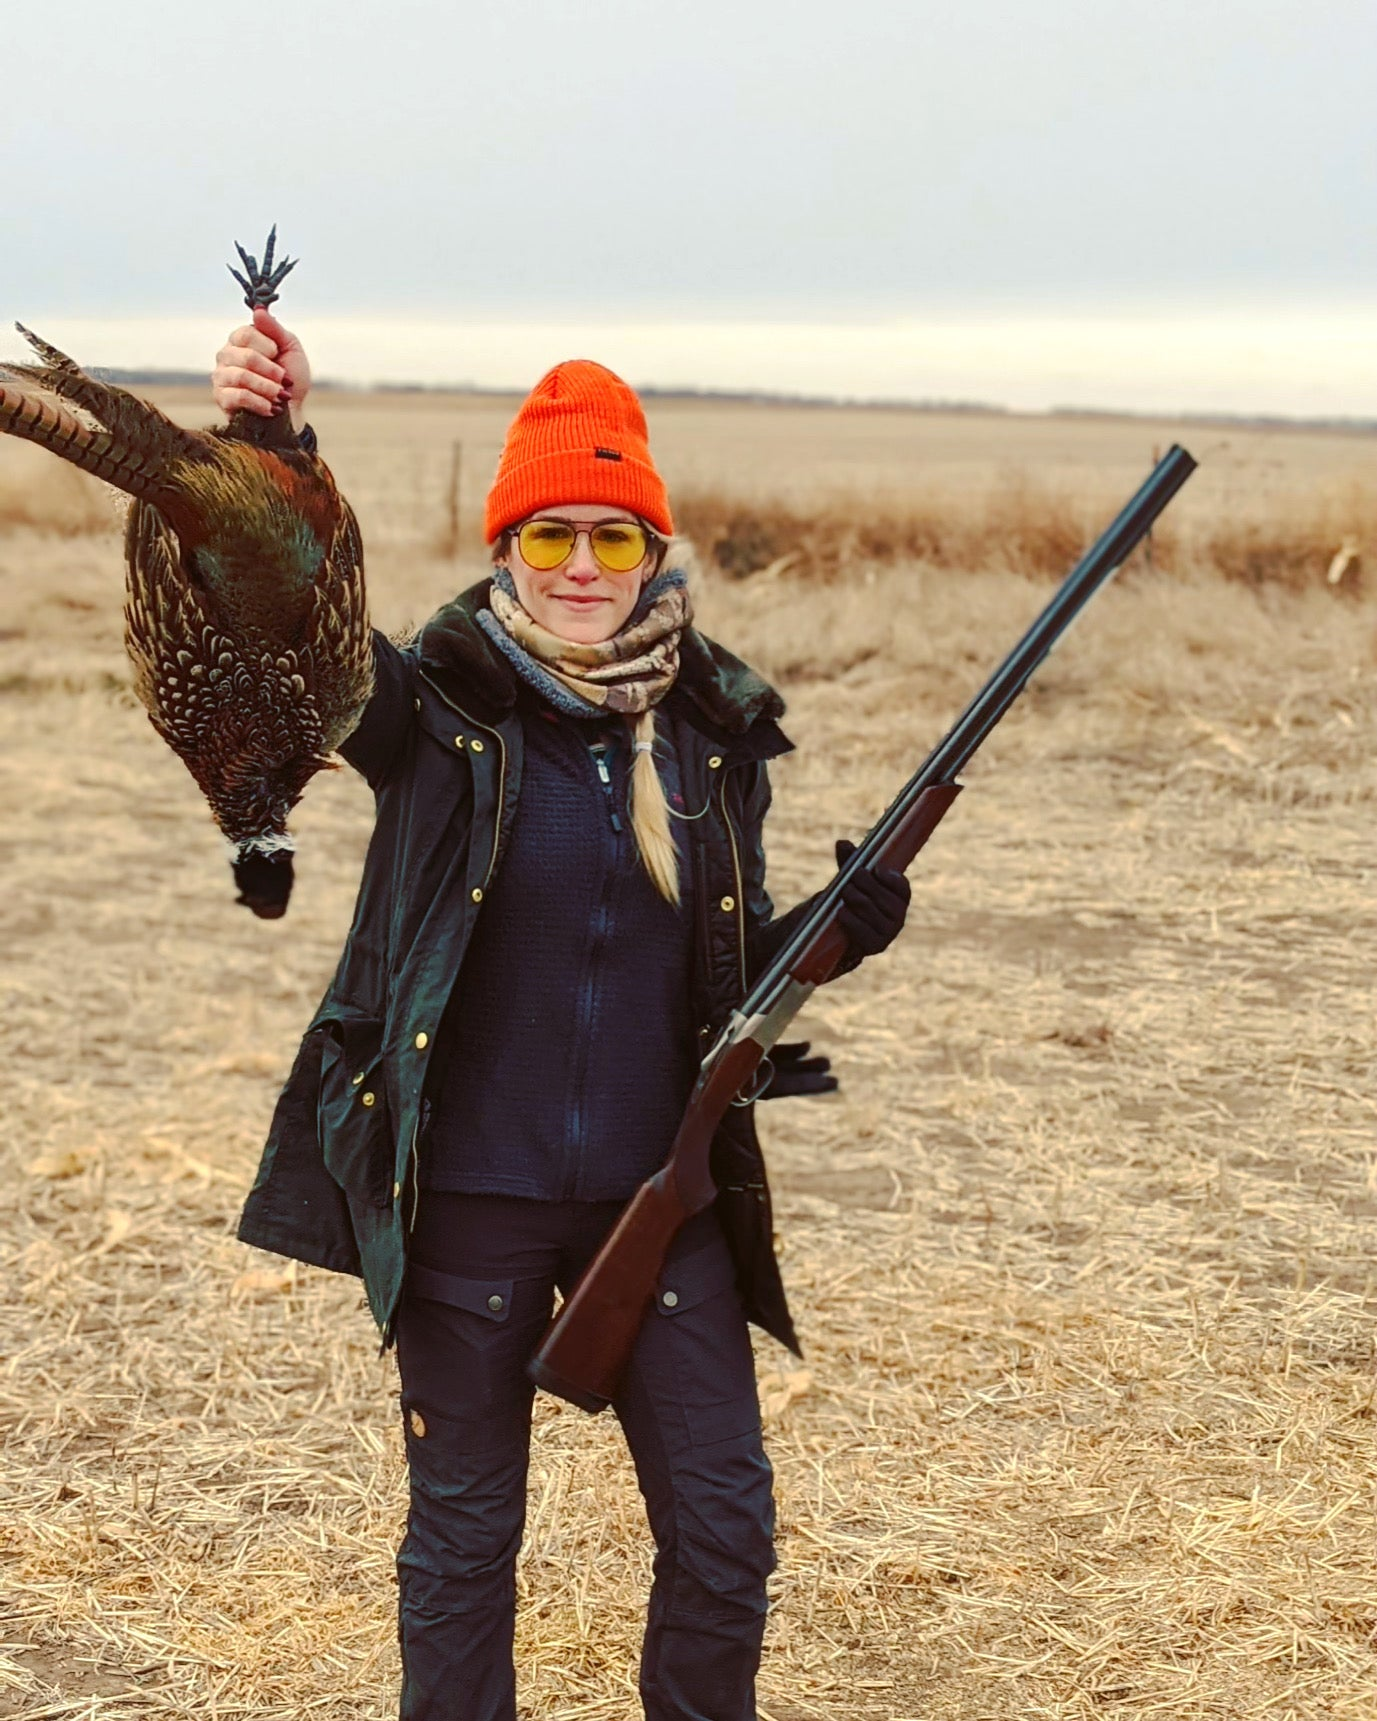 """Virginia's first pheasant. She's shooting a 20 gauge Browning Citori, which is a perfect fit for her 5'2"""" frame. Not only do over-under shotguns like this one look handsome, they're easier to load and unload than a semi-auto, offering neophyte hunters more confidence that they're being as safe as possible."""